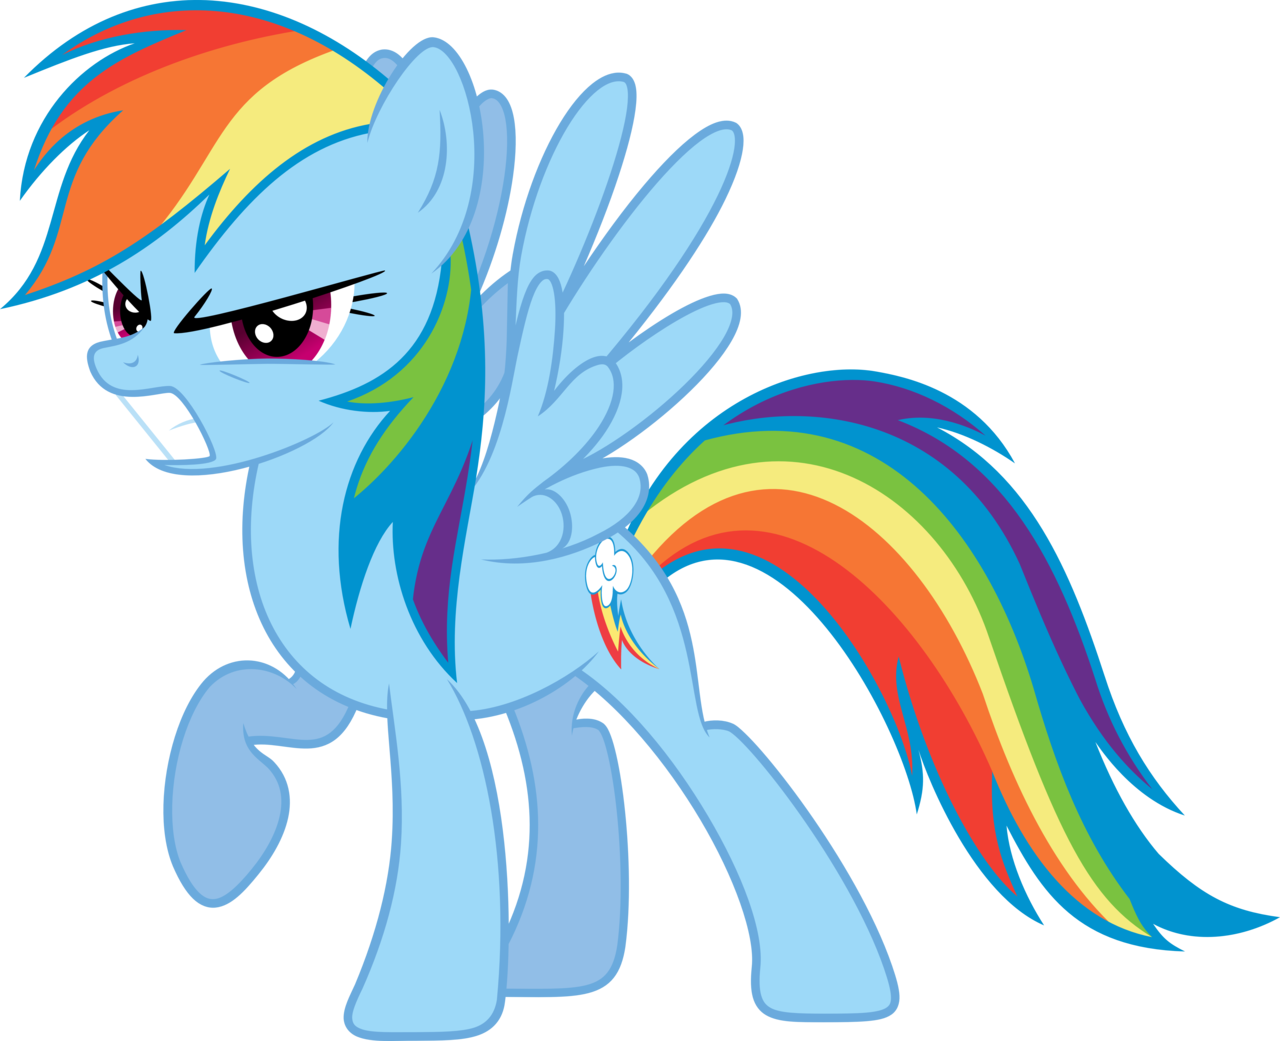 What Background Pony are You? (1) - Personality Quiz | 1280 x 1041 png 318kB